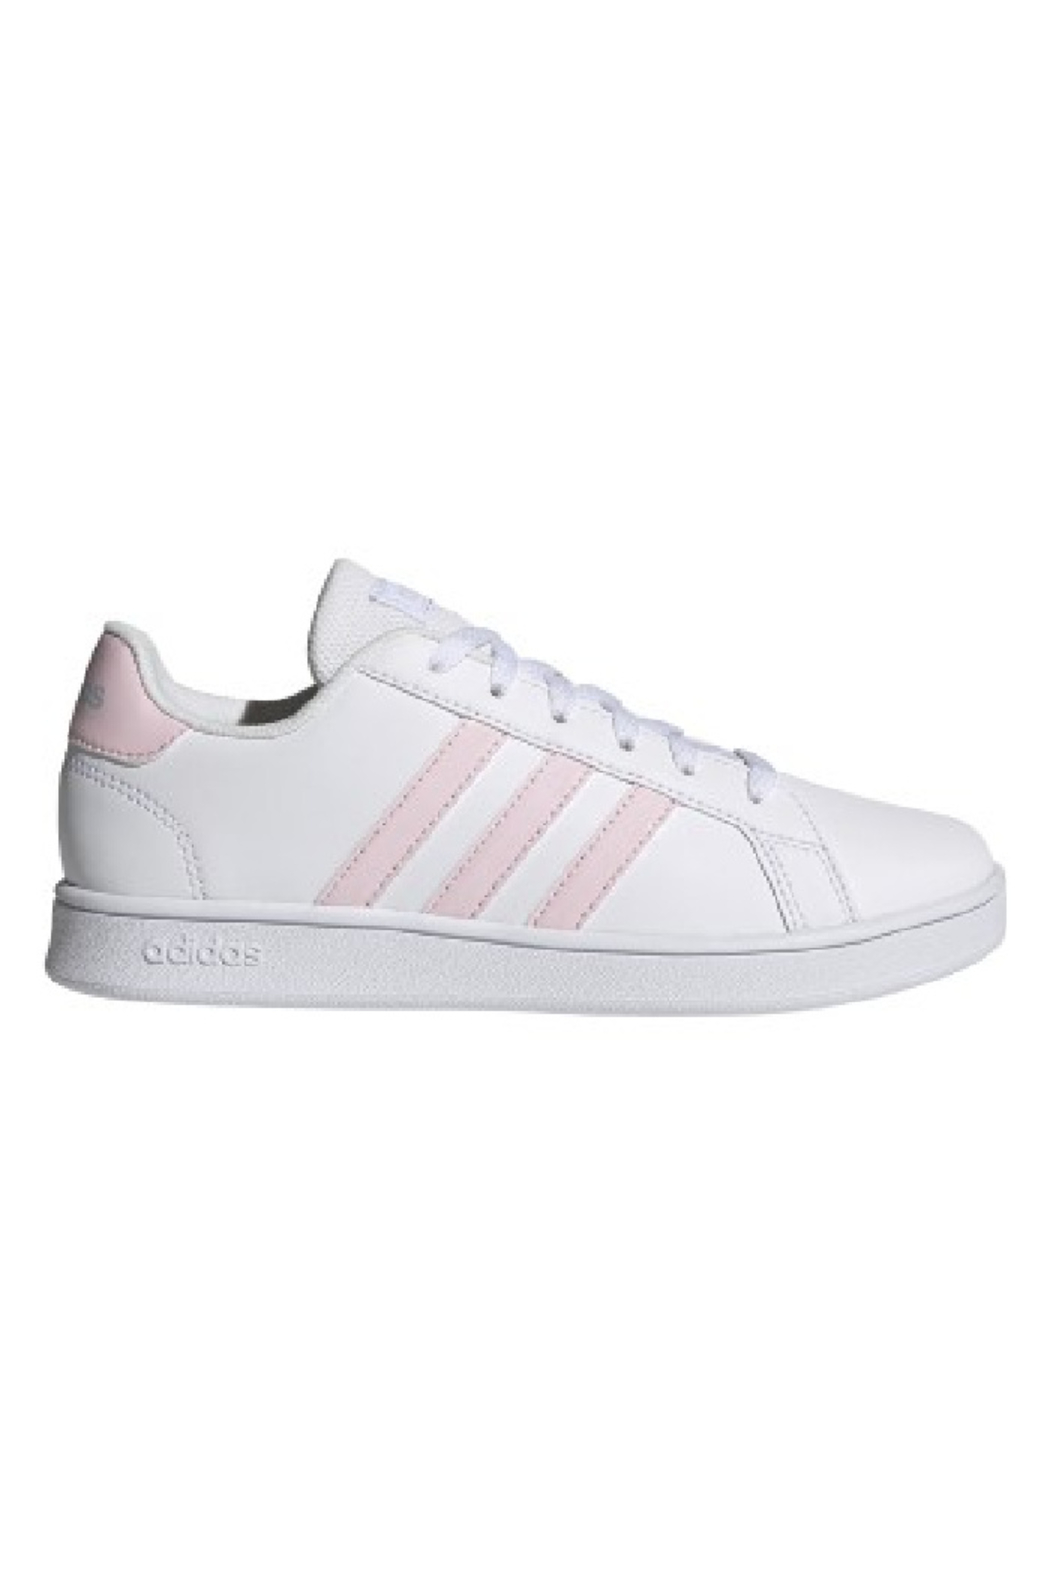 adidas Adidas Kids Grand Court in Future White/Clear Pink/Halo Blue - Main Image